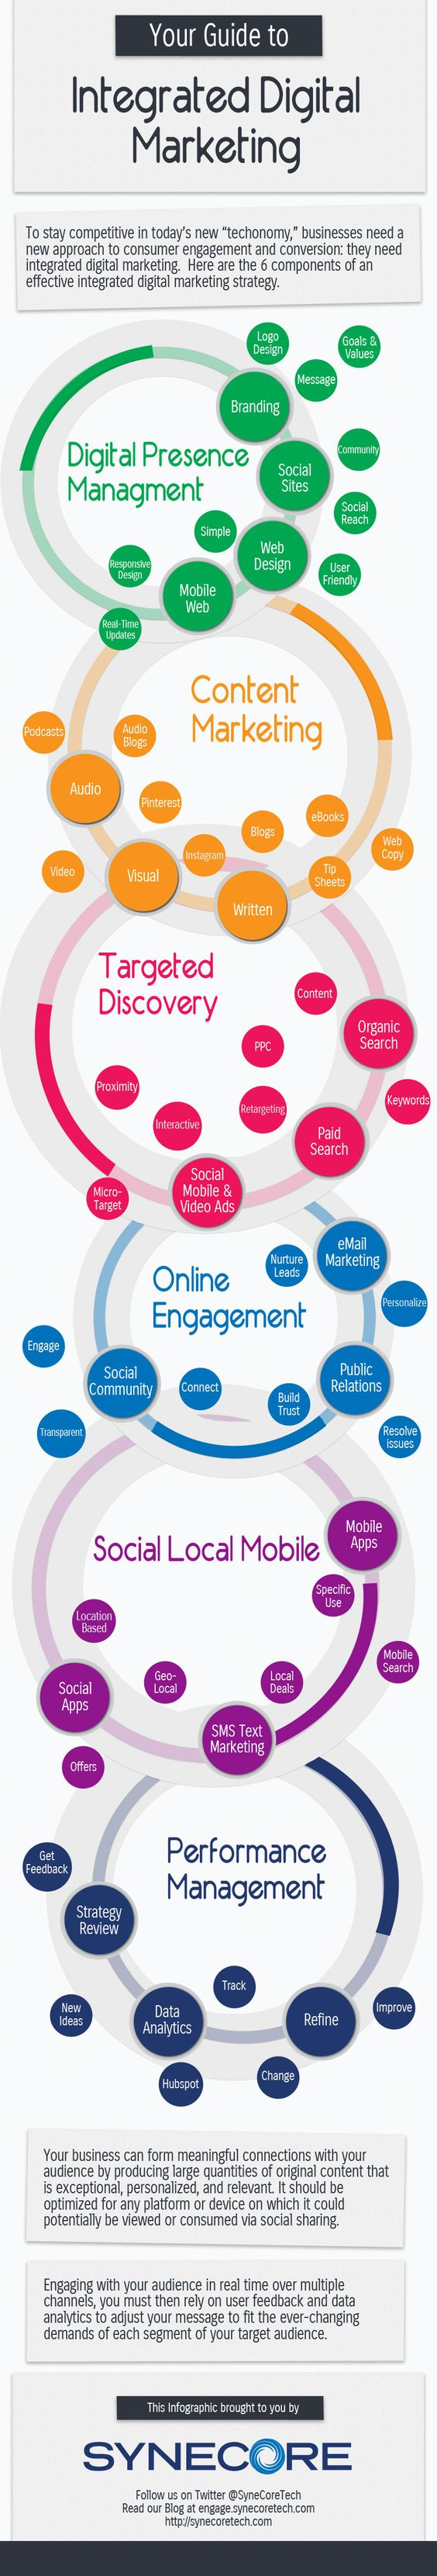 Infographic of the Week: Your Guide To Integrated Digital Marketing